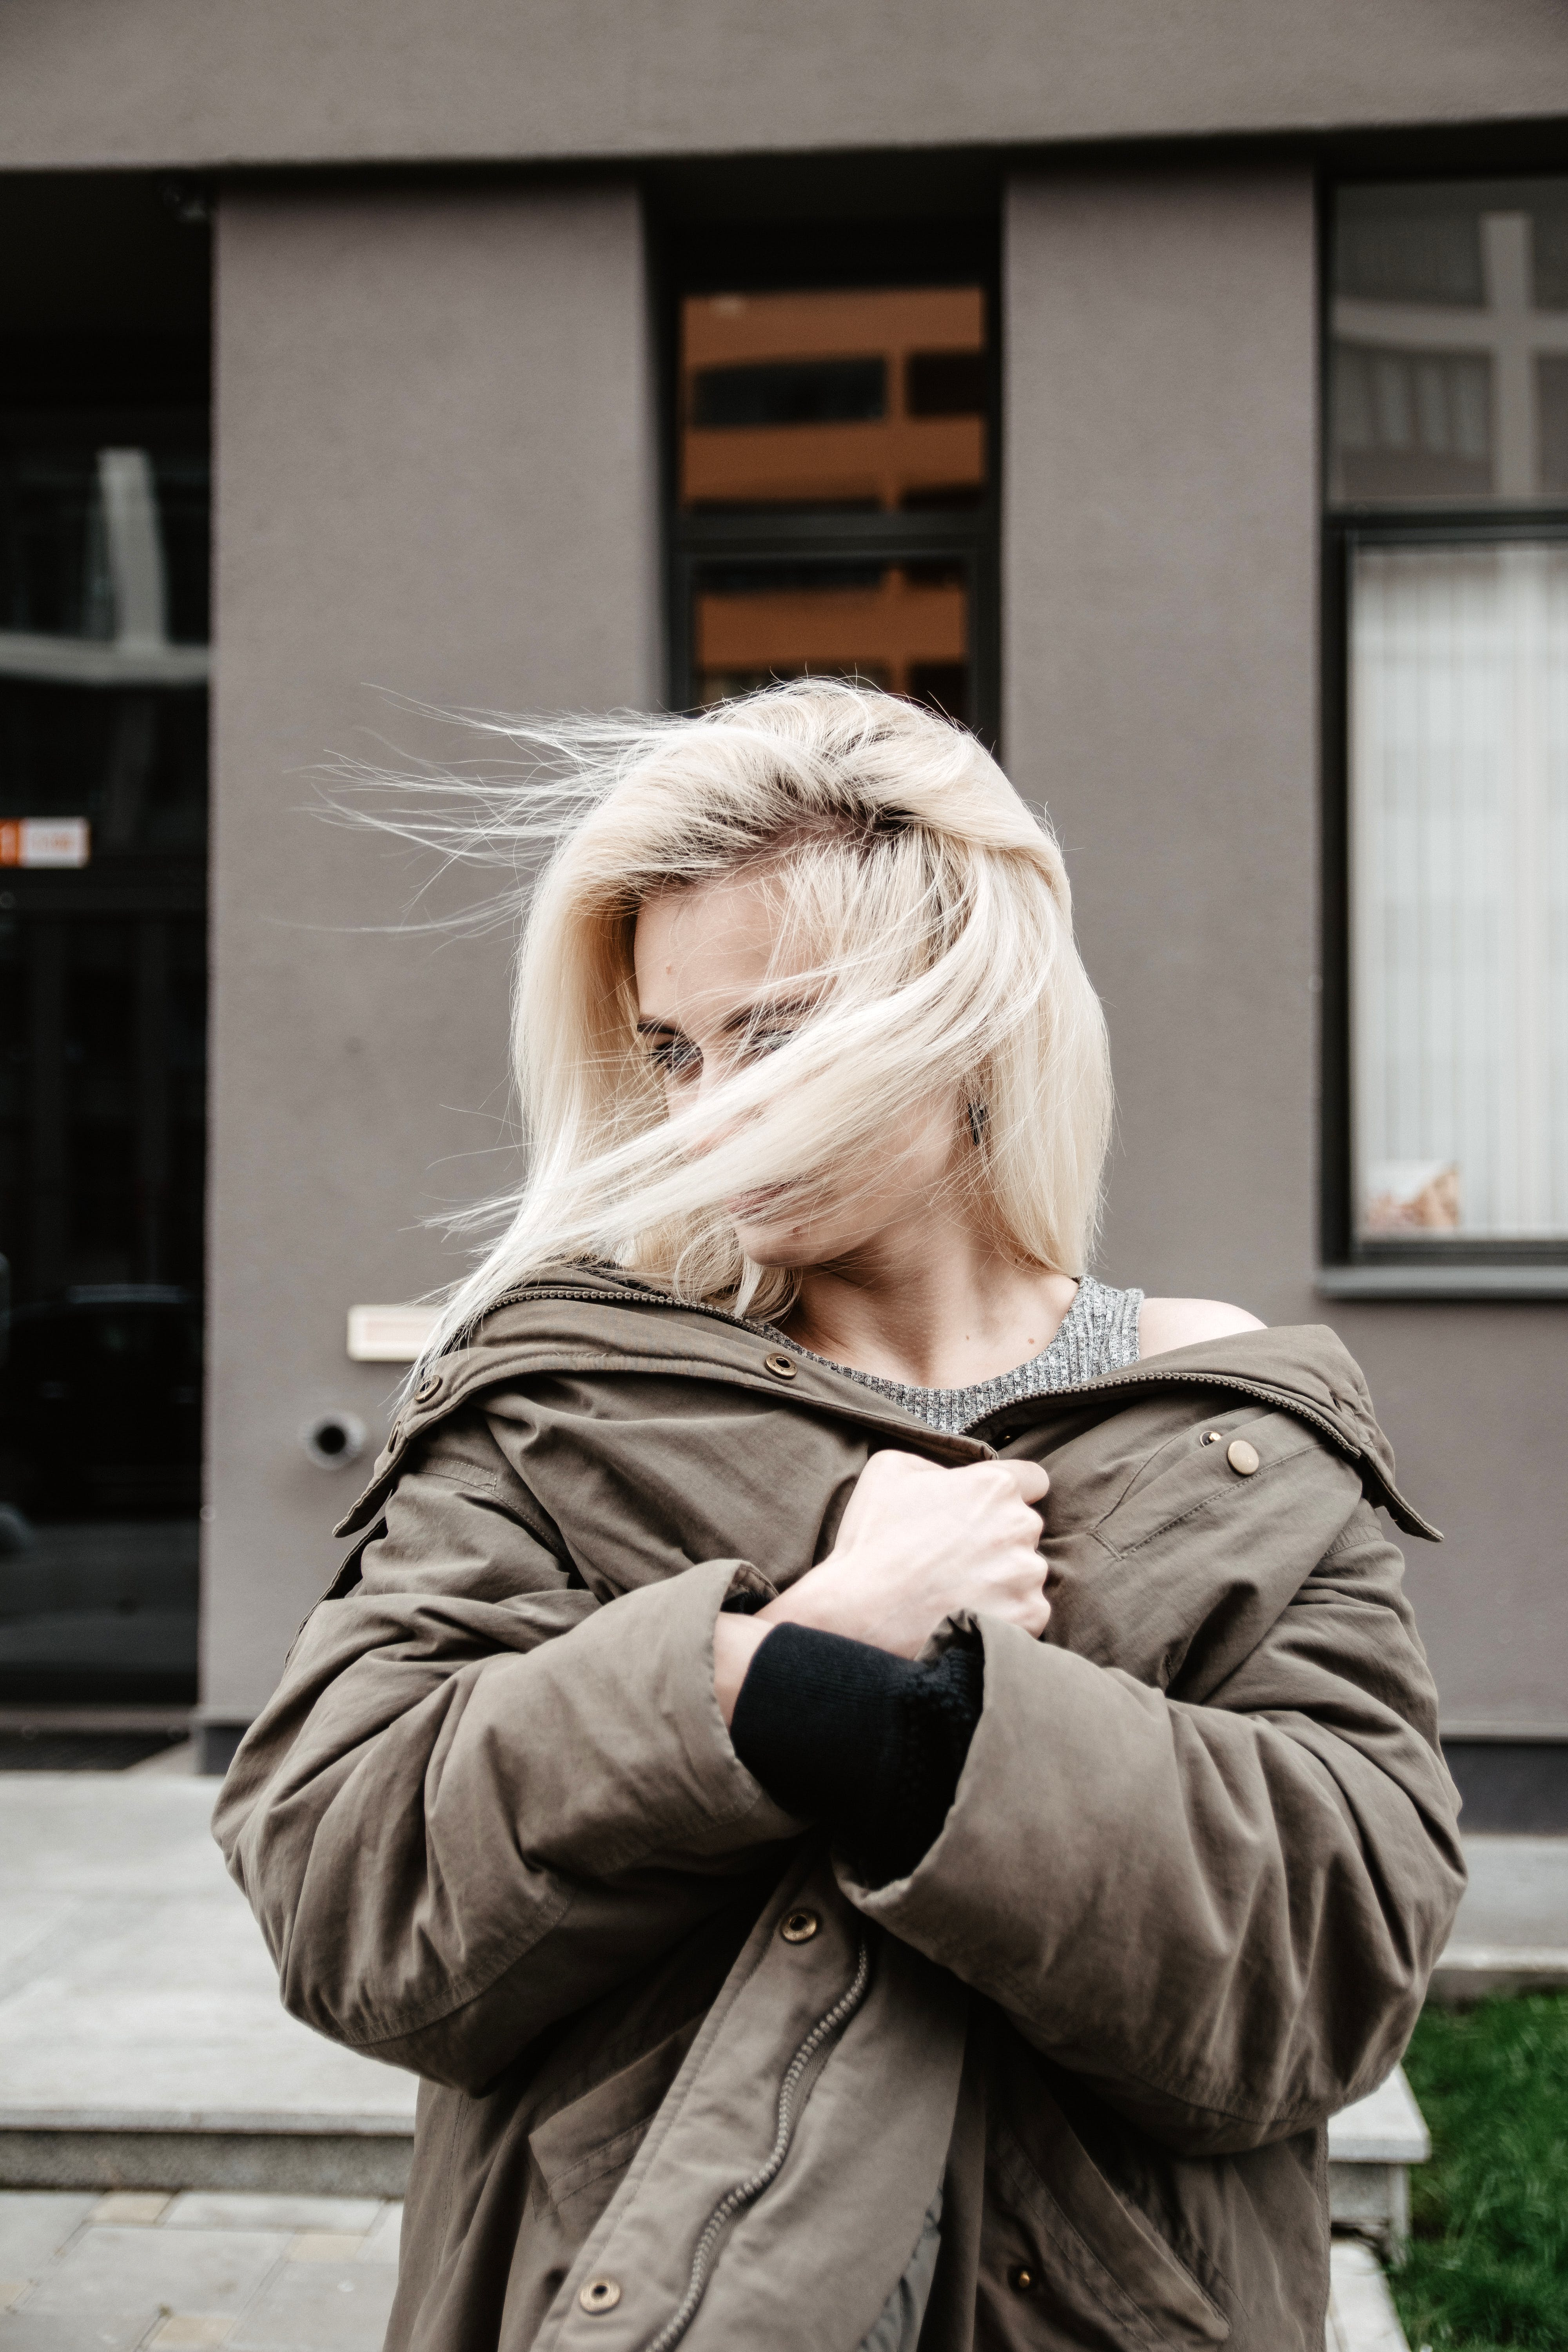 Photo of Standing Woman Wearing Brown Coat with Her Hair Covering Her Face